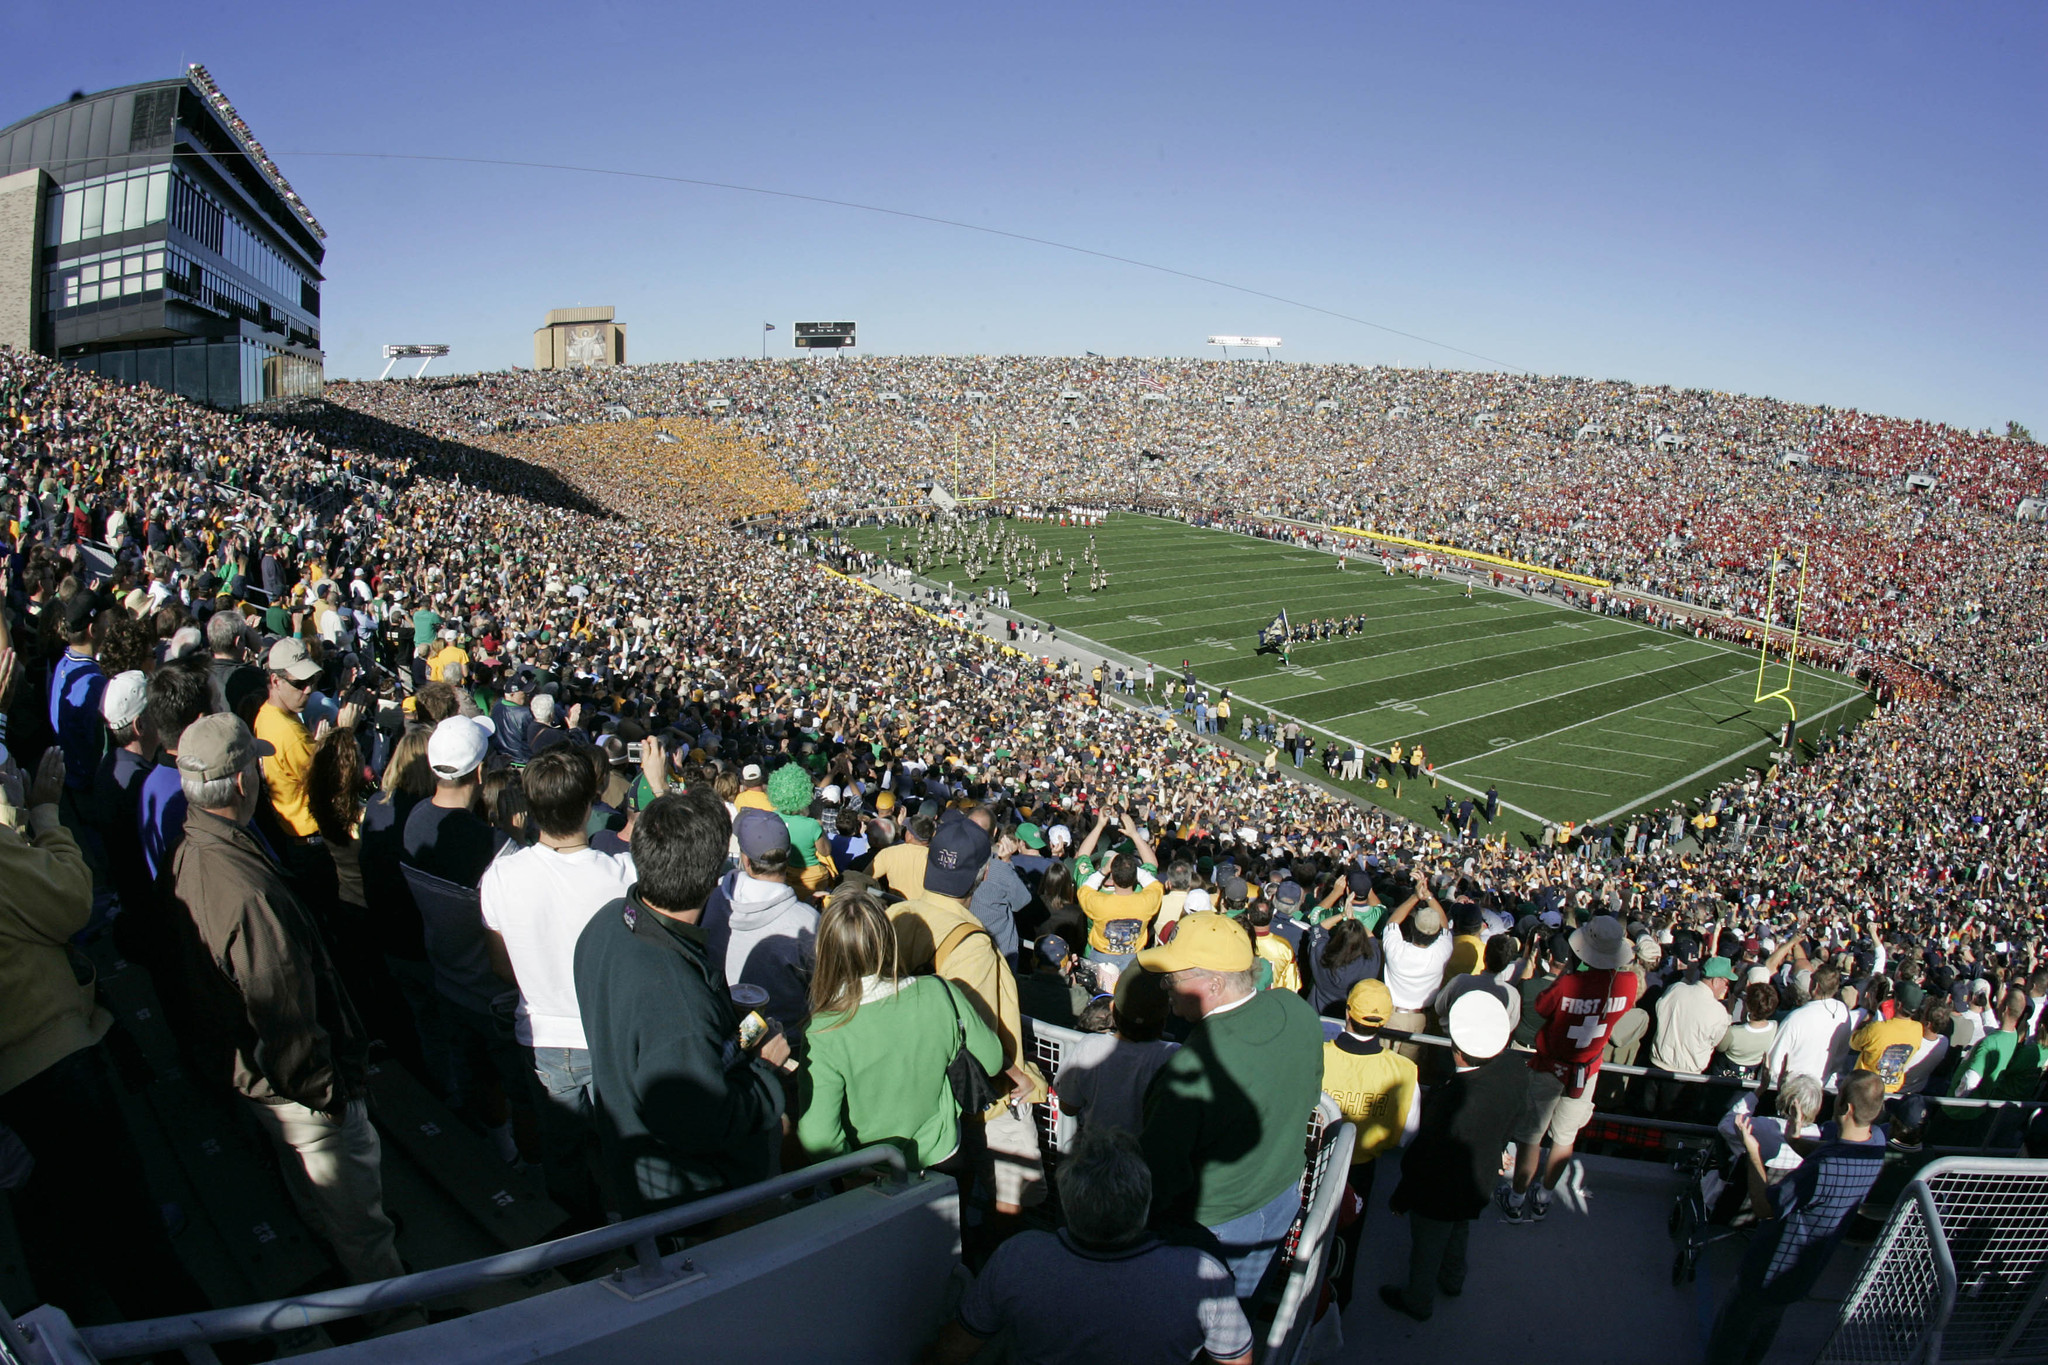 Notre Dame To Have New Pricing Model For Football Tickets